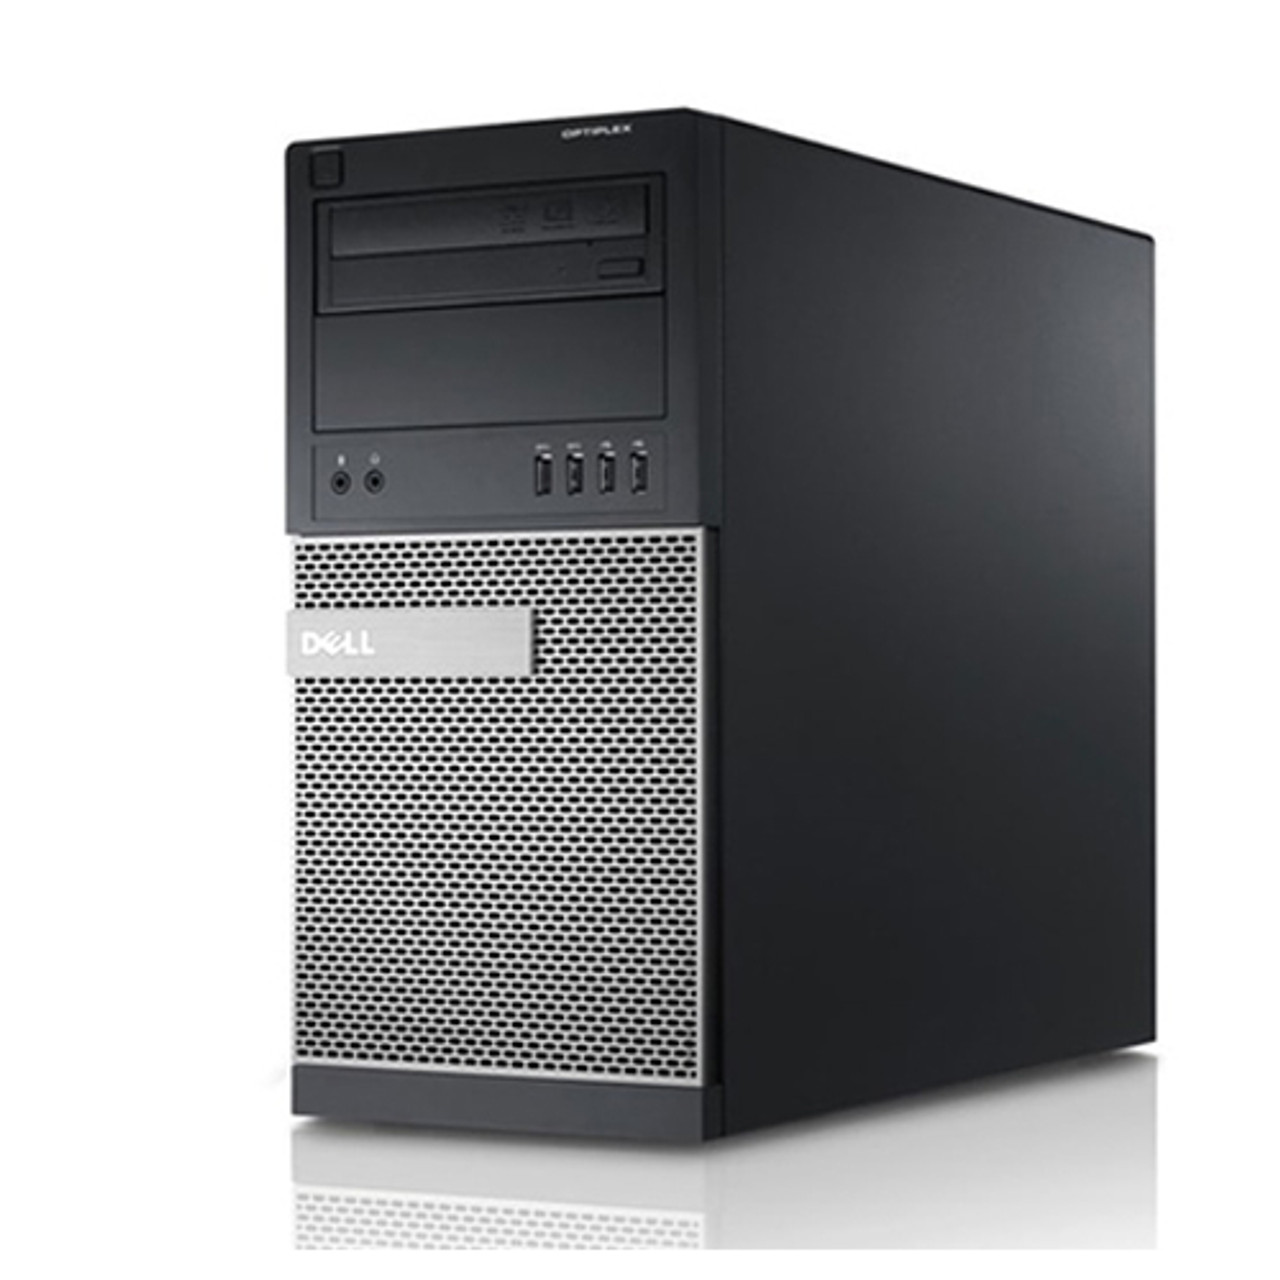 Dell Optiplex 3020 Computer Tower | Intel Core i5 3 3GHz Processor | 8GB  RAM | 128GB SSD | Win10 Pro | WiFi | Keyboard | Mouse